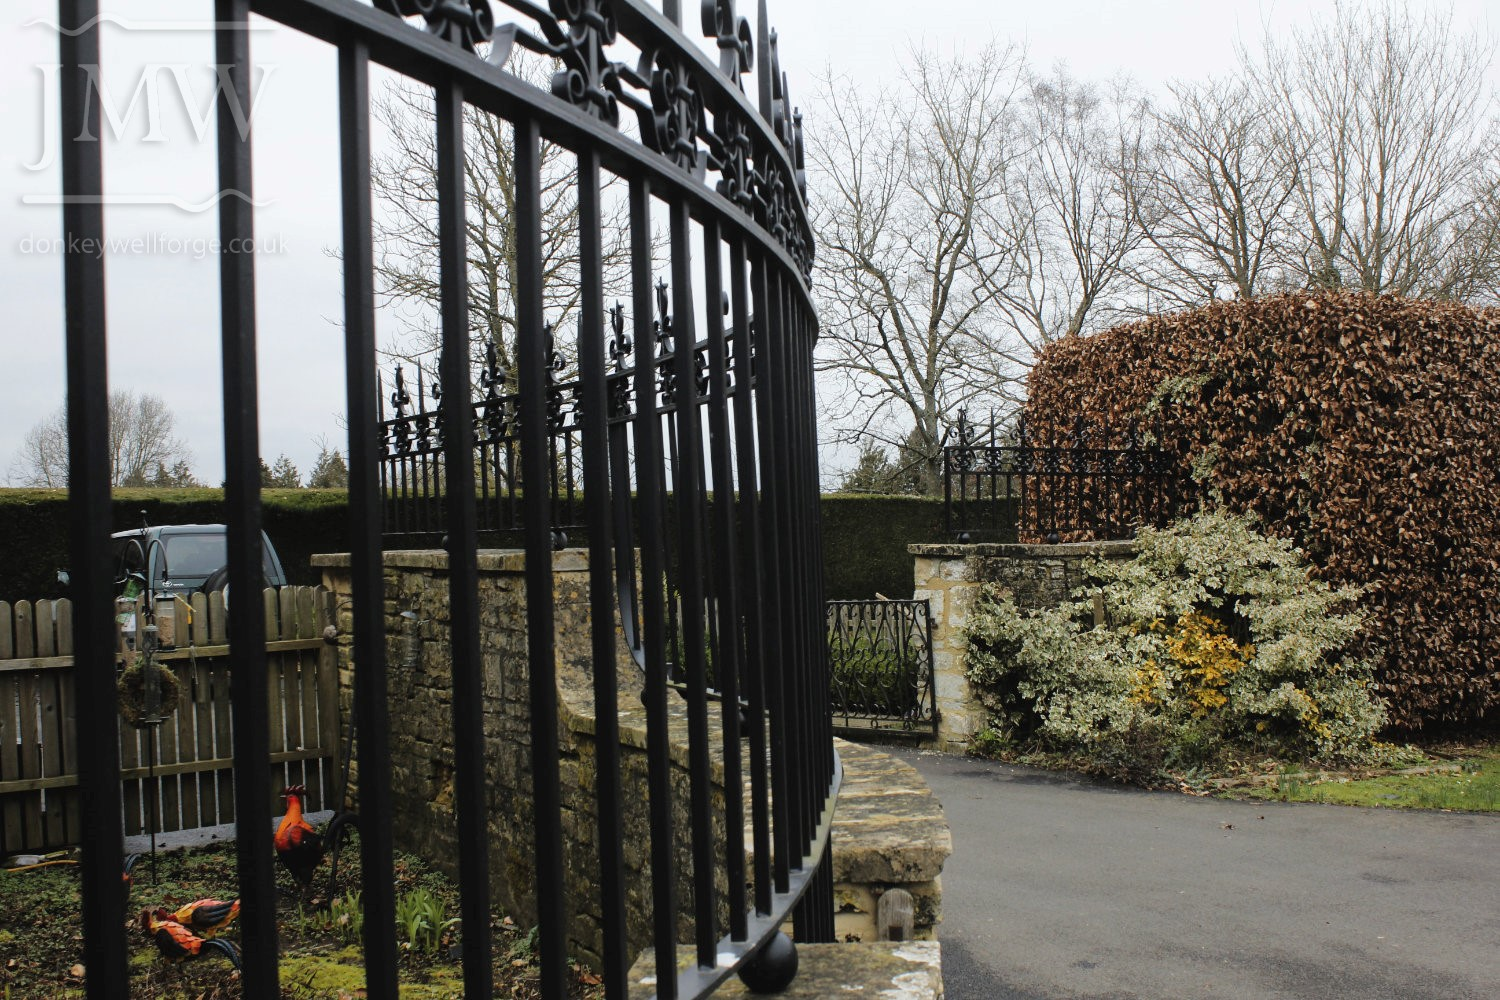 ironwork-ornate-cotswold-railing-country-estate-donkeywell-forge